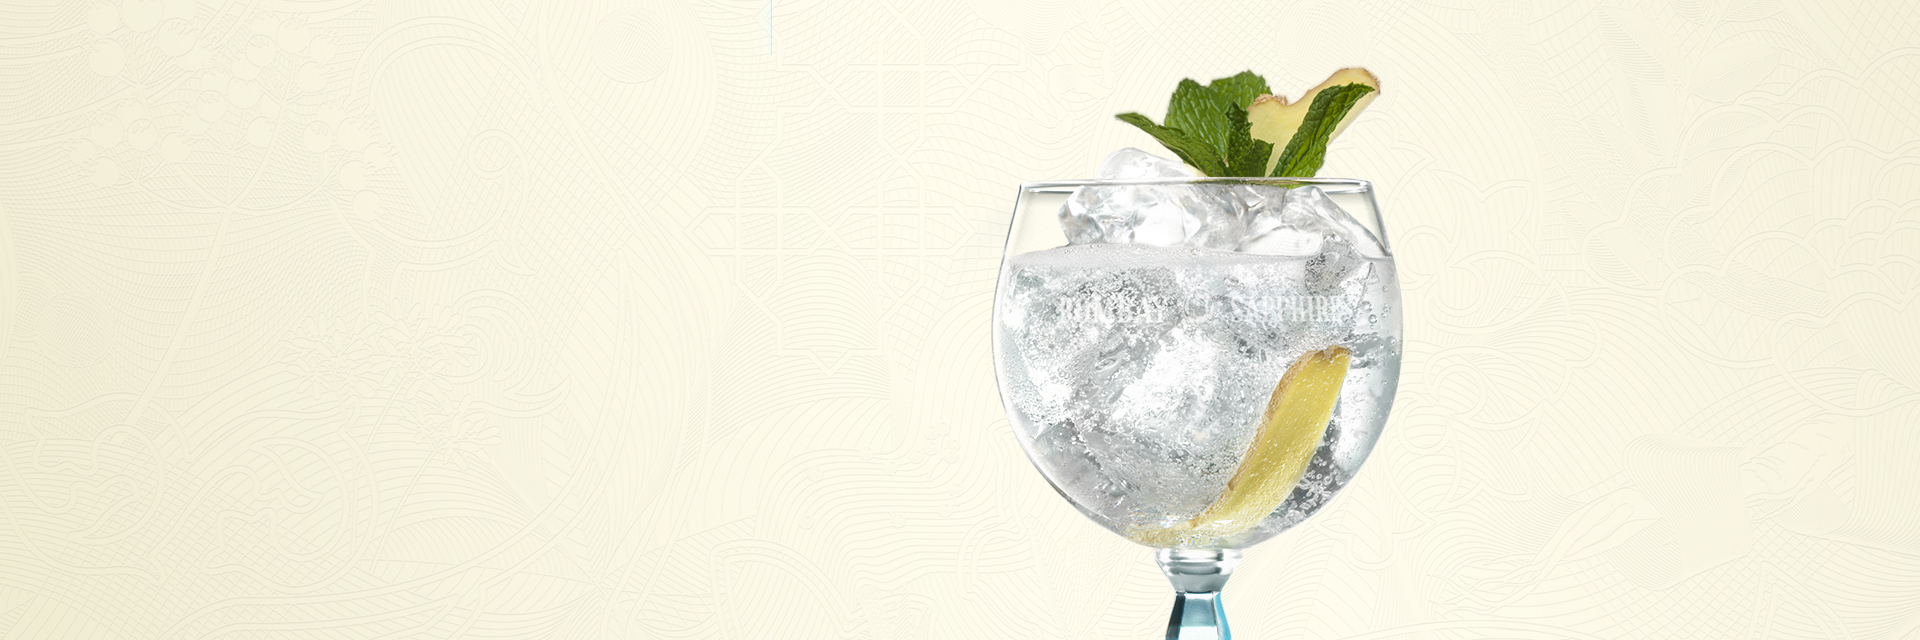 BOMBAY SAPPHIRE MINT & GINGER TWIST